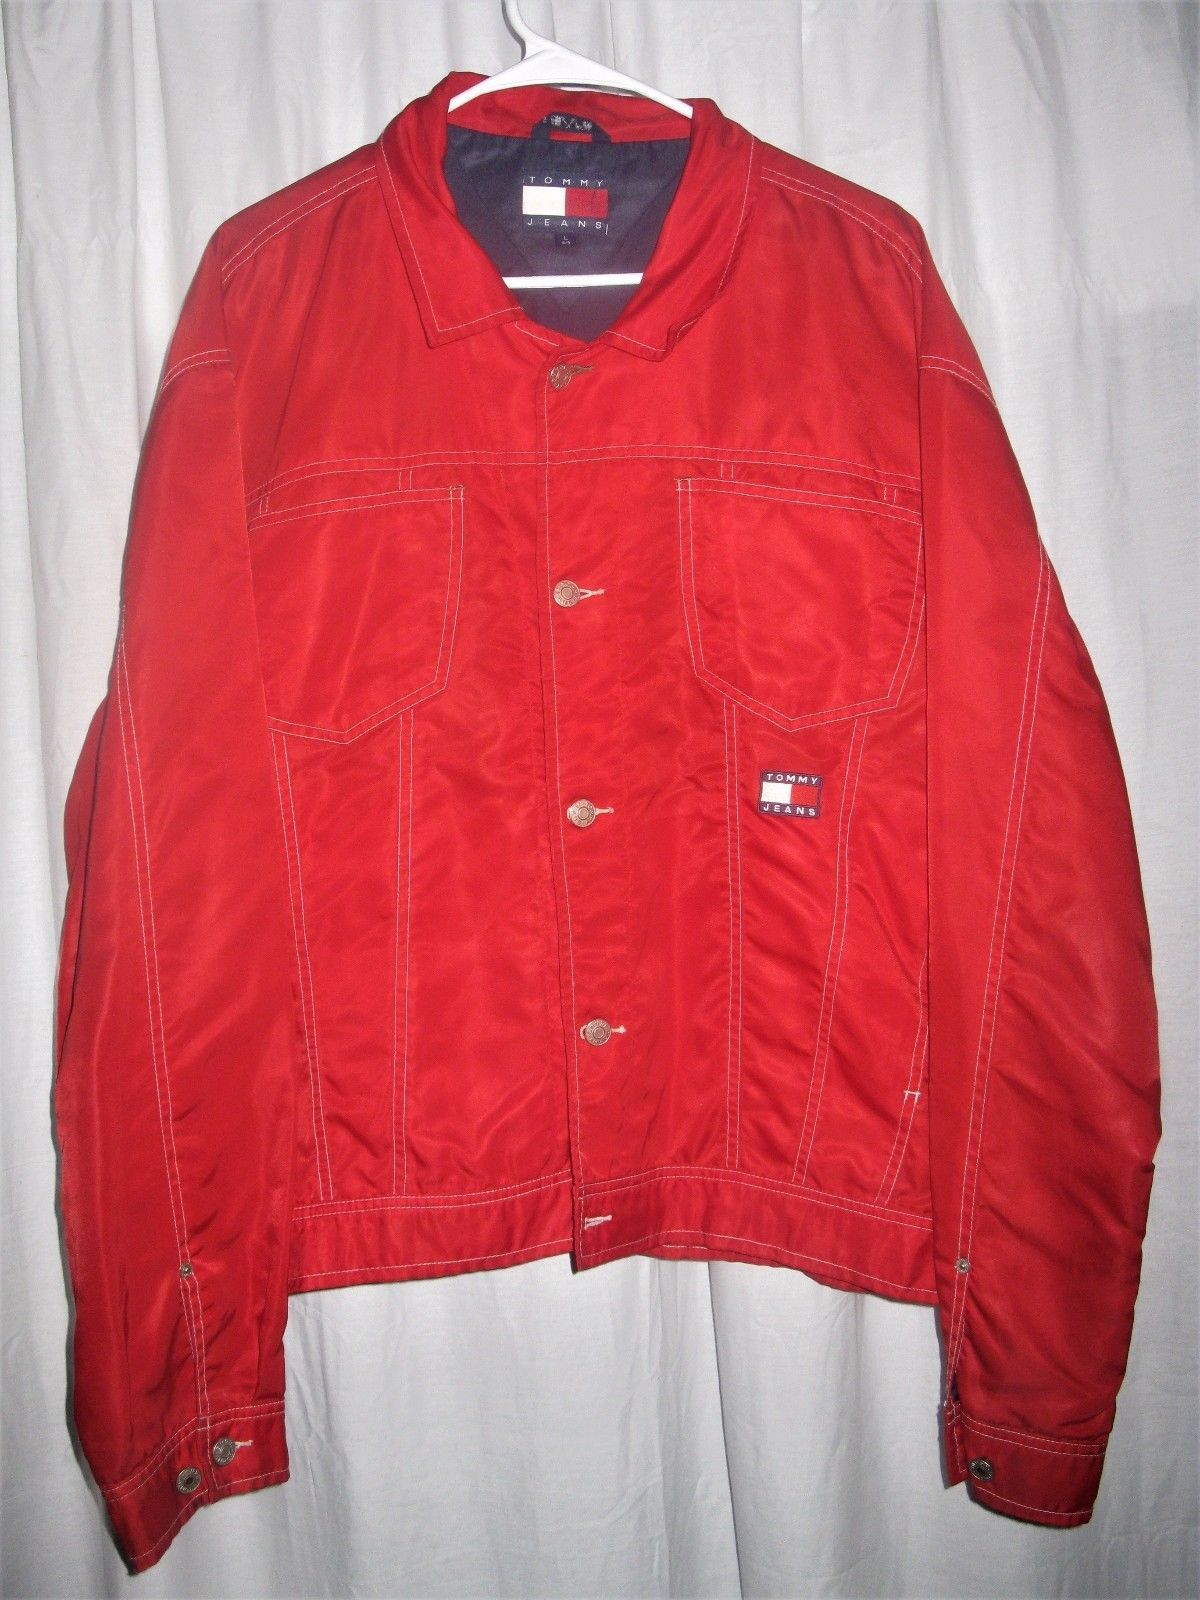 Men's Vintage Tommy Hilfiger Red 100% Nylon Button Up Windbreaker ...